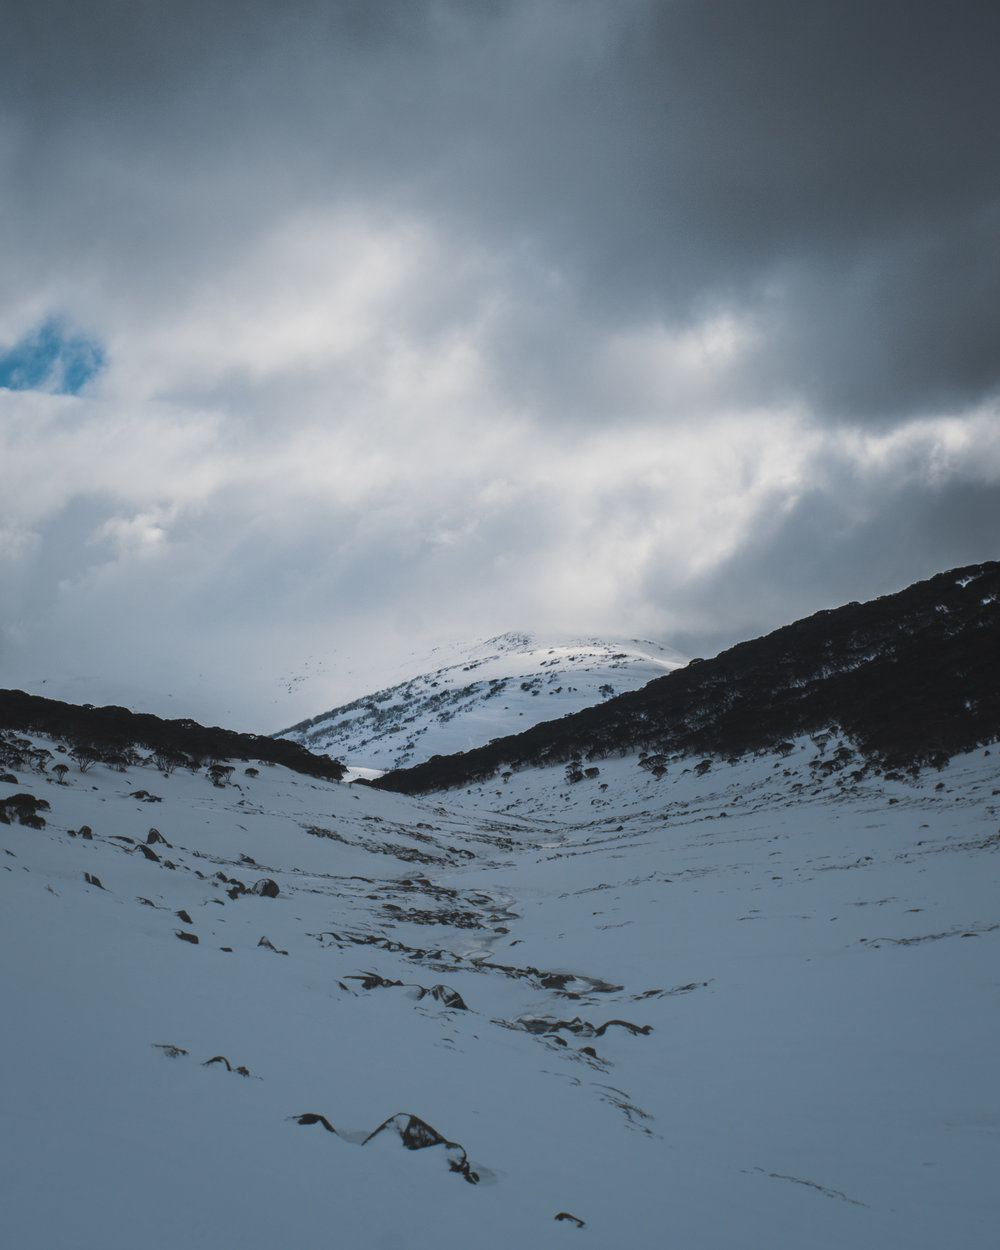 Taken on the way to 5 days of Snow adventures at Charlotte's pass. Reminds me of the last episode of Game of Thrones!!